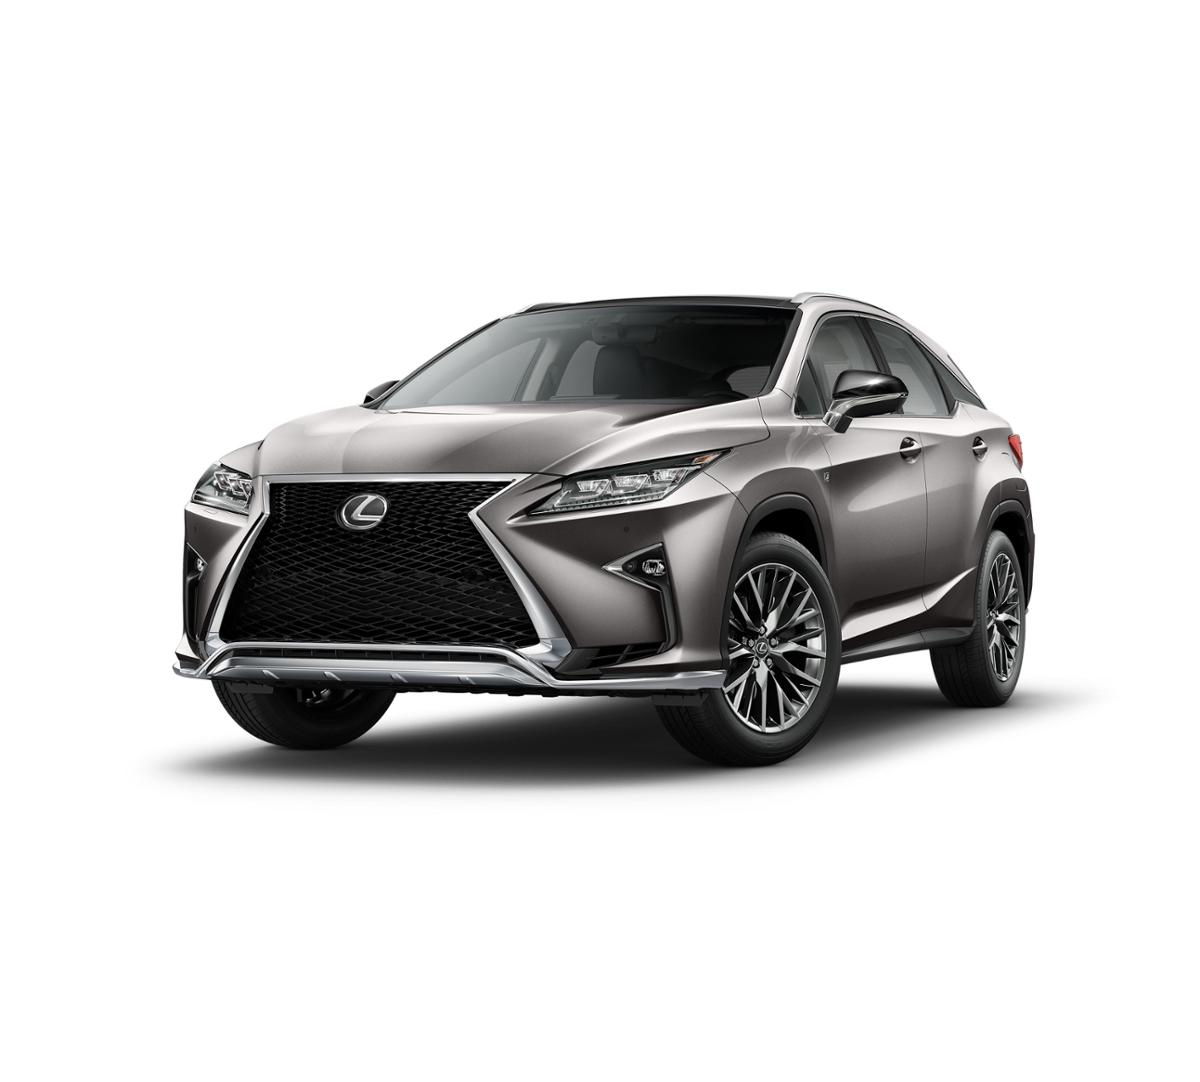 2018 lexus rx 350 f sport in atomic silver for sale in lakeway texas 2t2bzmca9jc140464 in lakeway. Black Bedroom Furniture Sets. Home Design Ideas